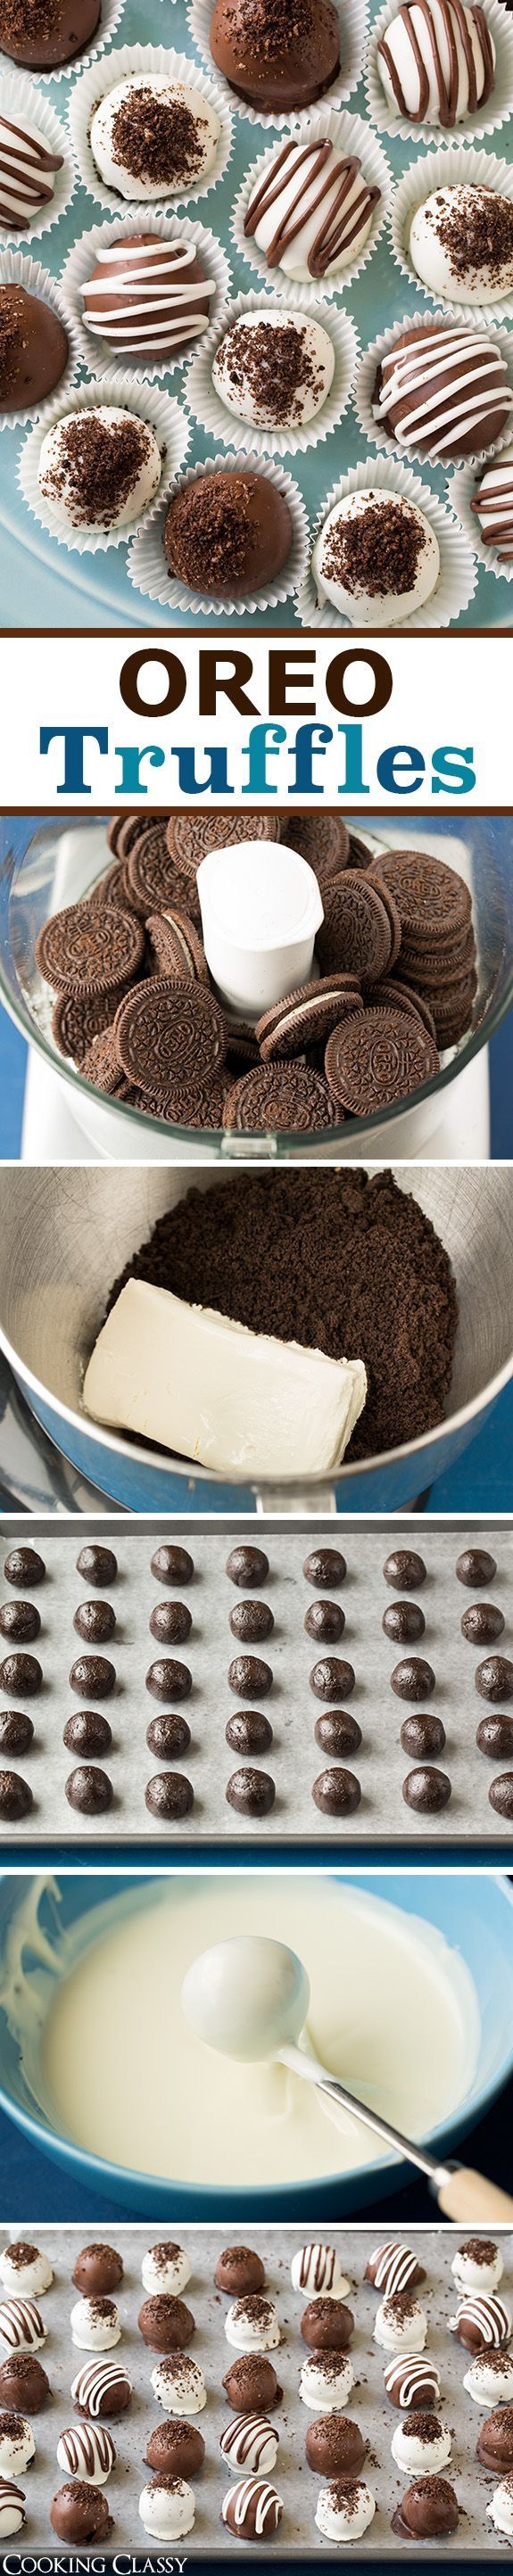 Trufas de oreo Ingredientes ♥- 1 paq. de galleta oreo ♥- Chocolate negro y blanco ♥- Queso crema